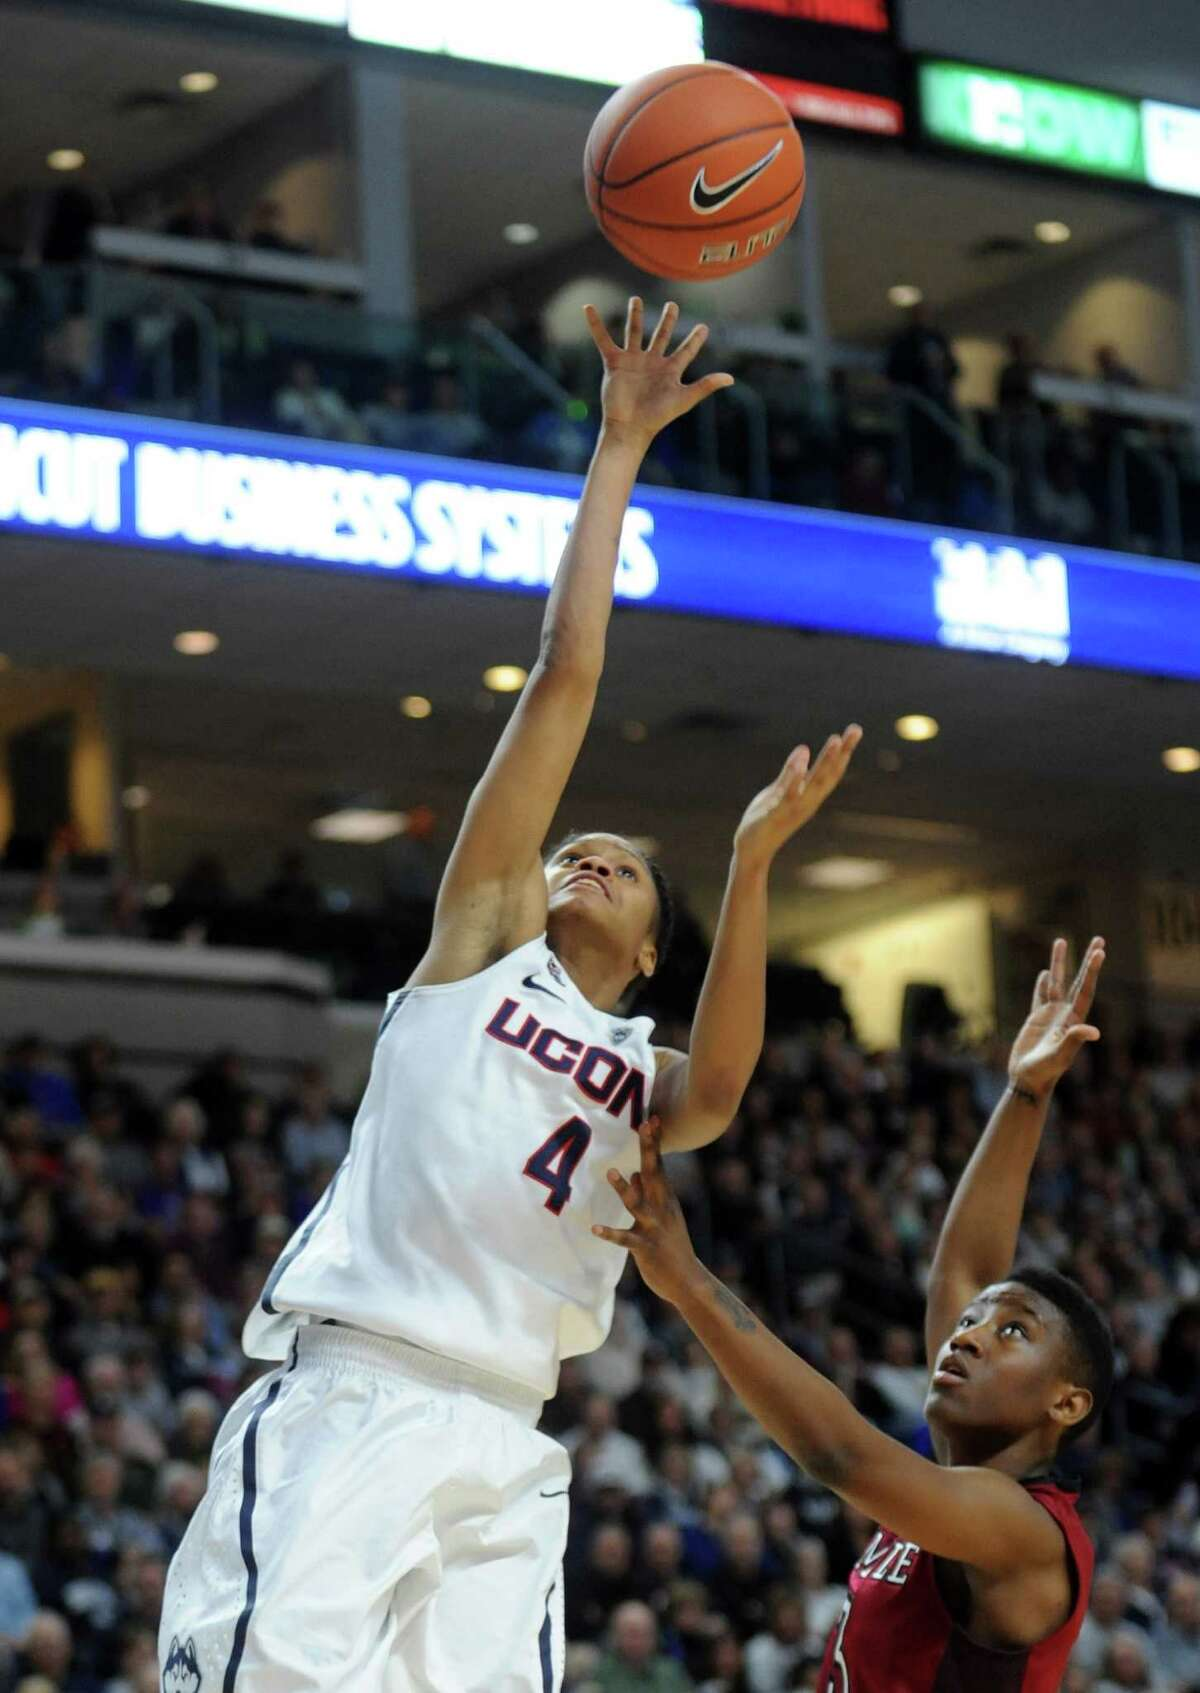 University of Connecticut's Moriah Jefferson goes in for the layup as Temple's Rateska Brown defends during their game Saturday, Jan. 11, 2014 at the Webster Bank Arena in Bridgeport, Conn.